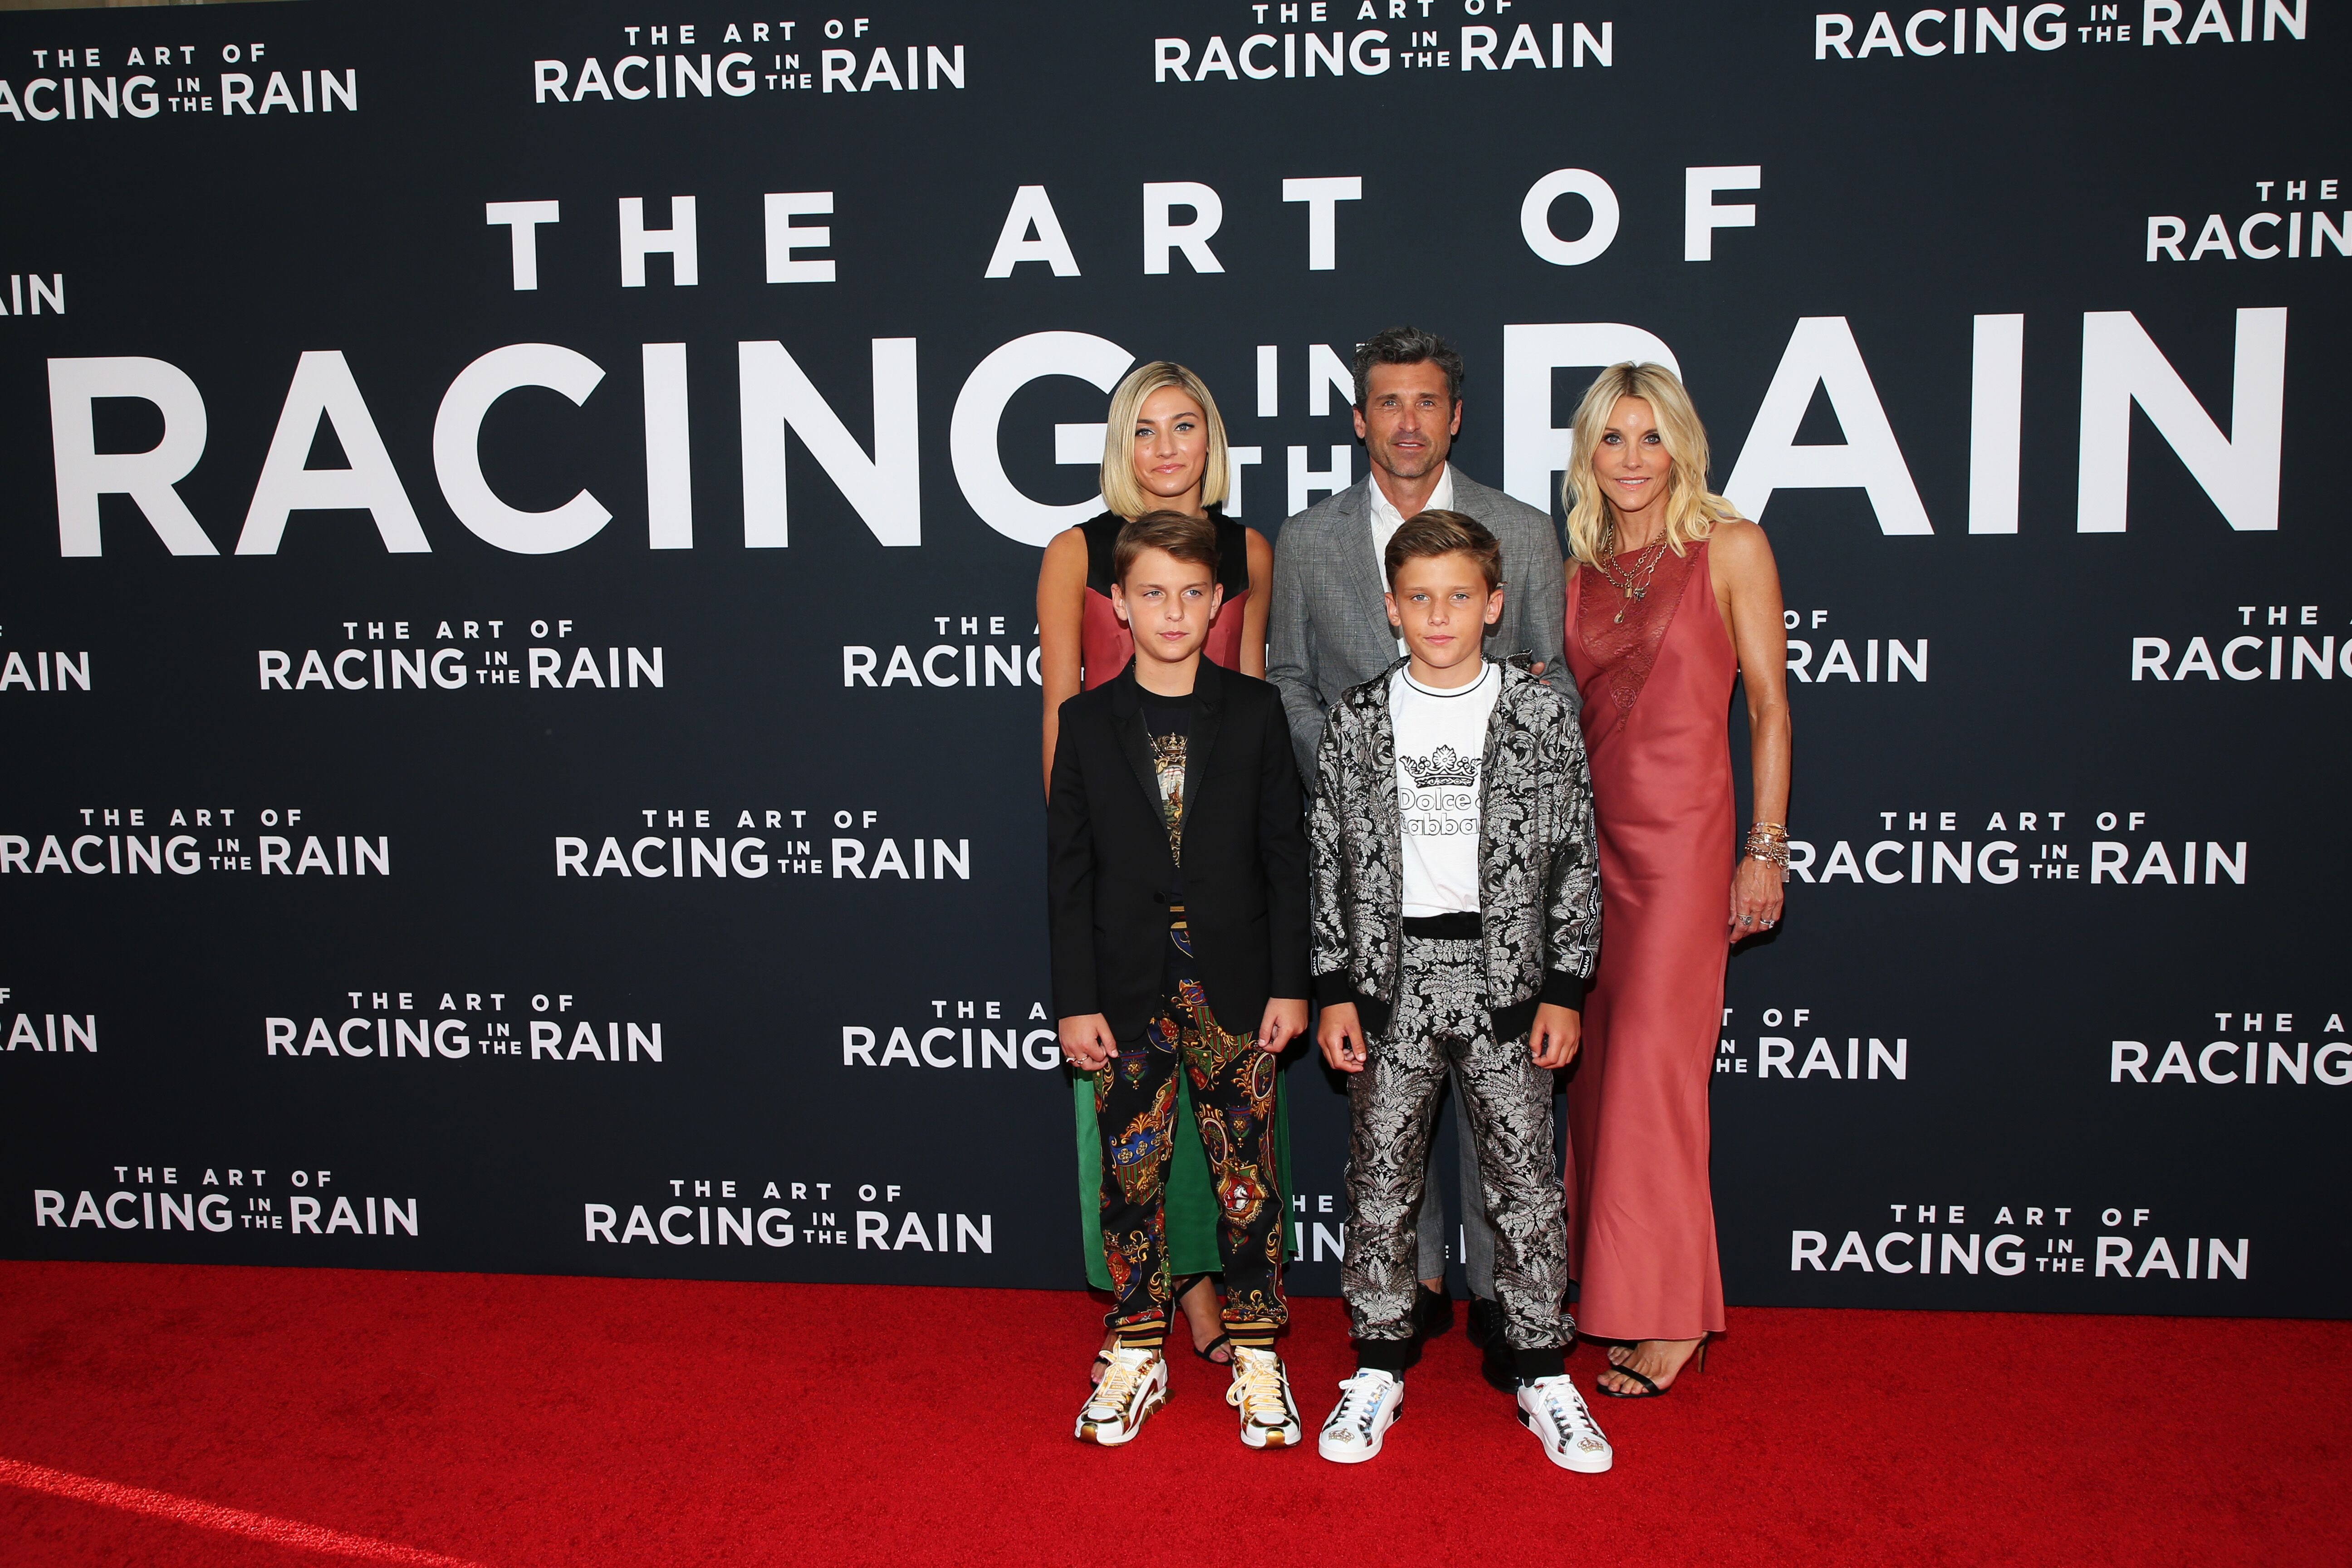 Patrick Dempsey and his wife and children at the ARTR premiere/ Source: Getty Images